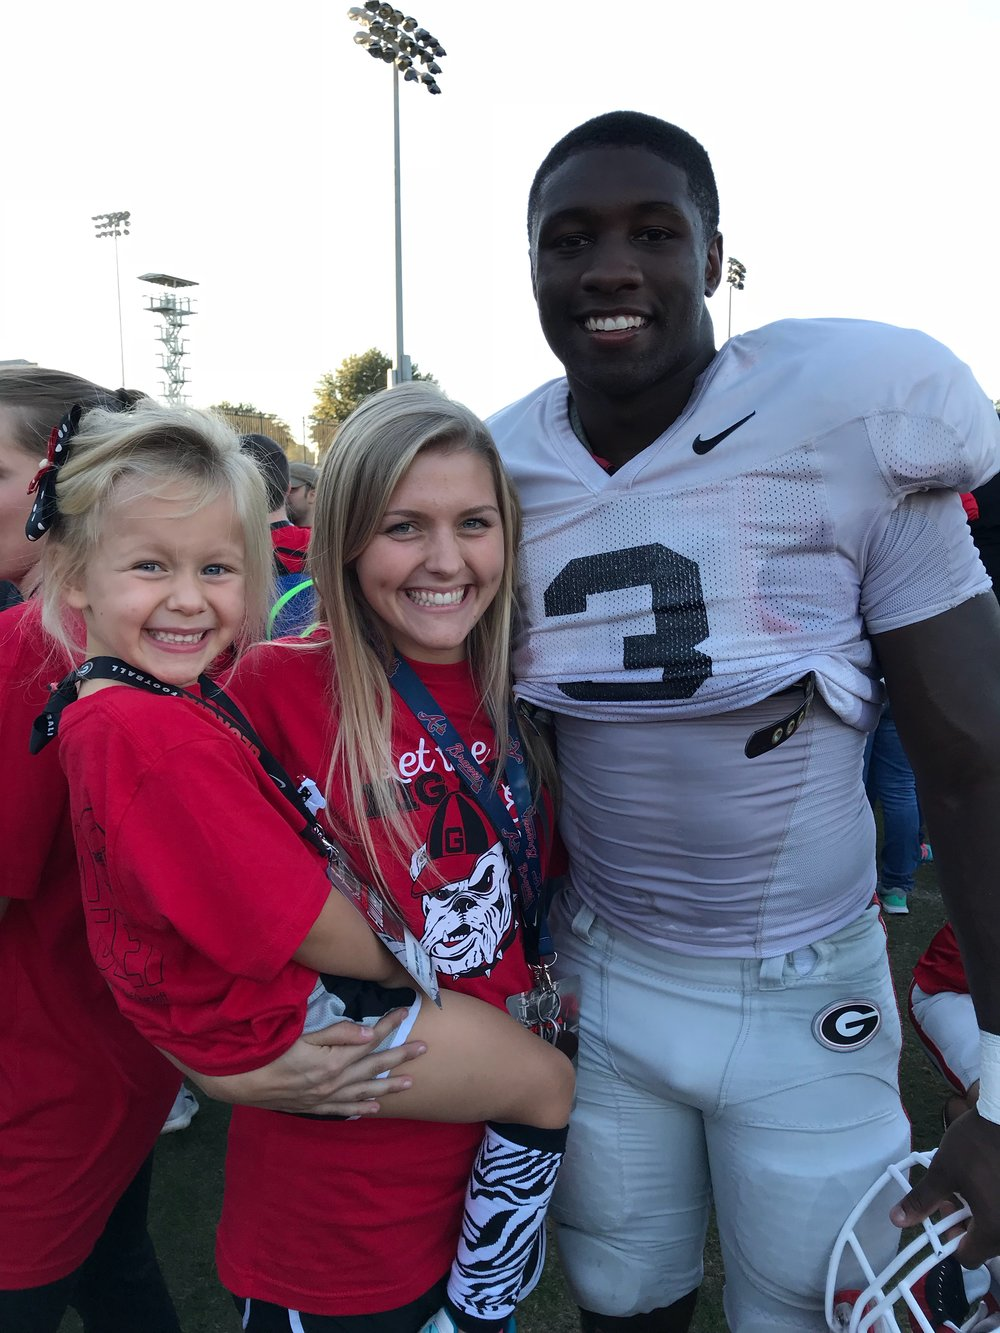 My little 5 year old Finley, Nicole Andrews & UGA's Roquan Smith